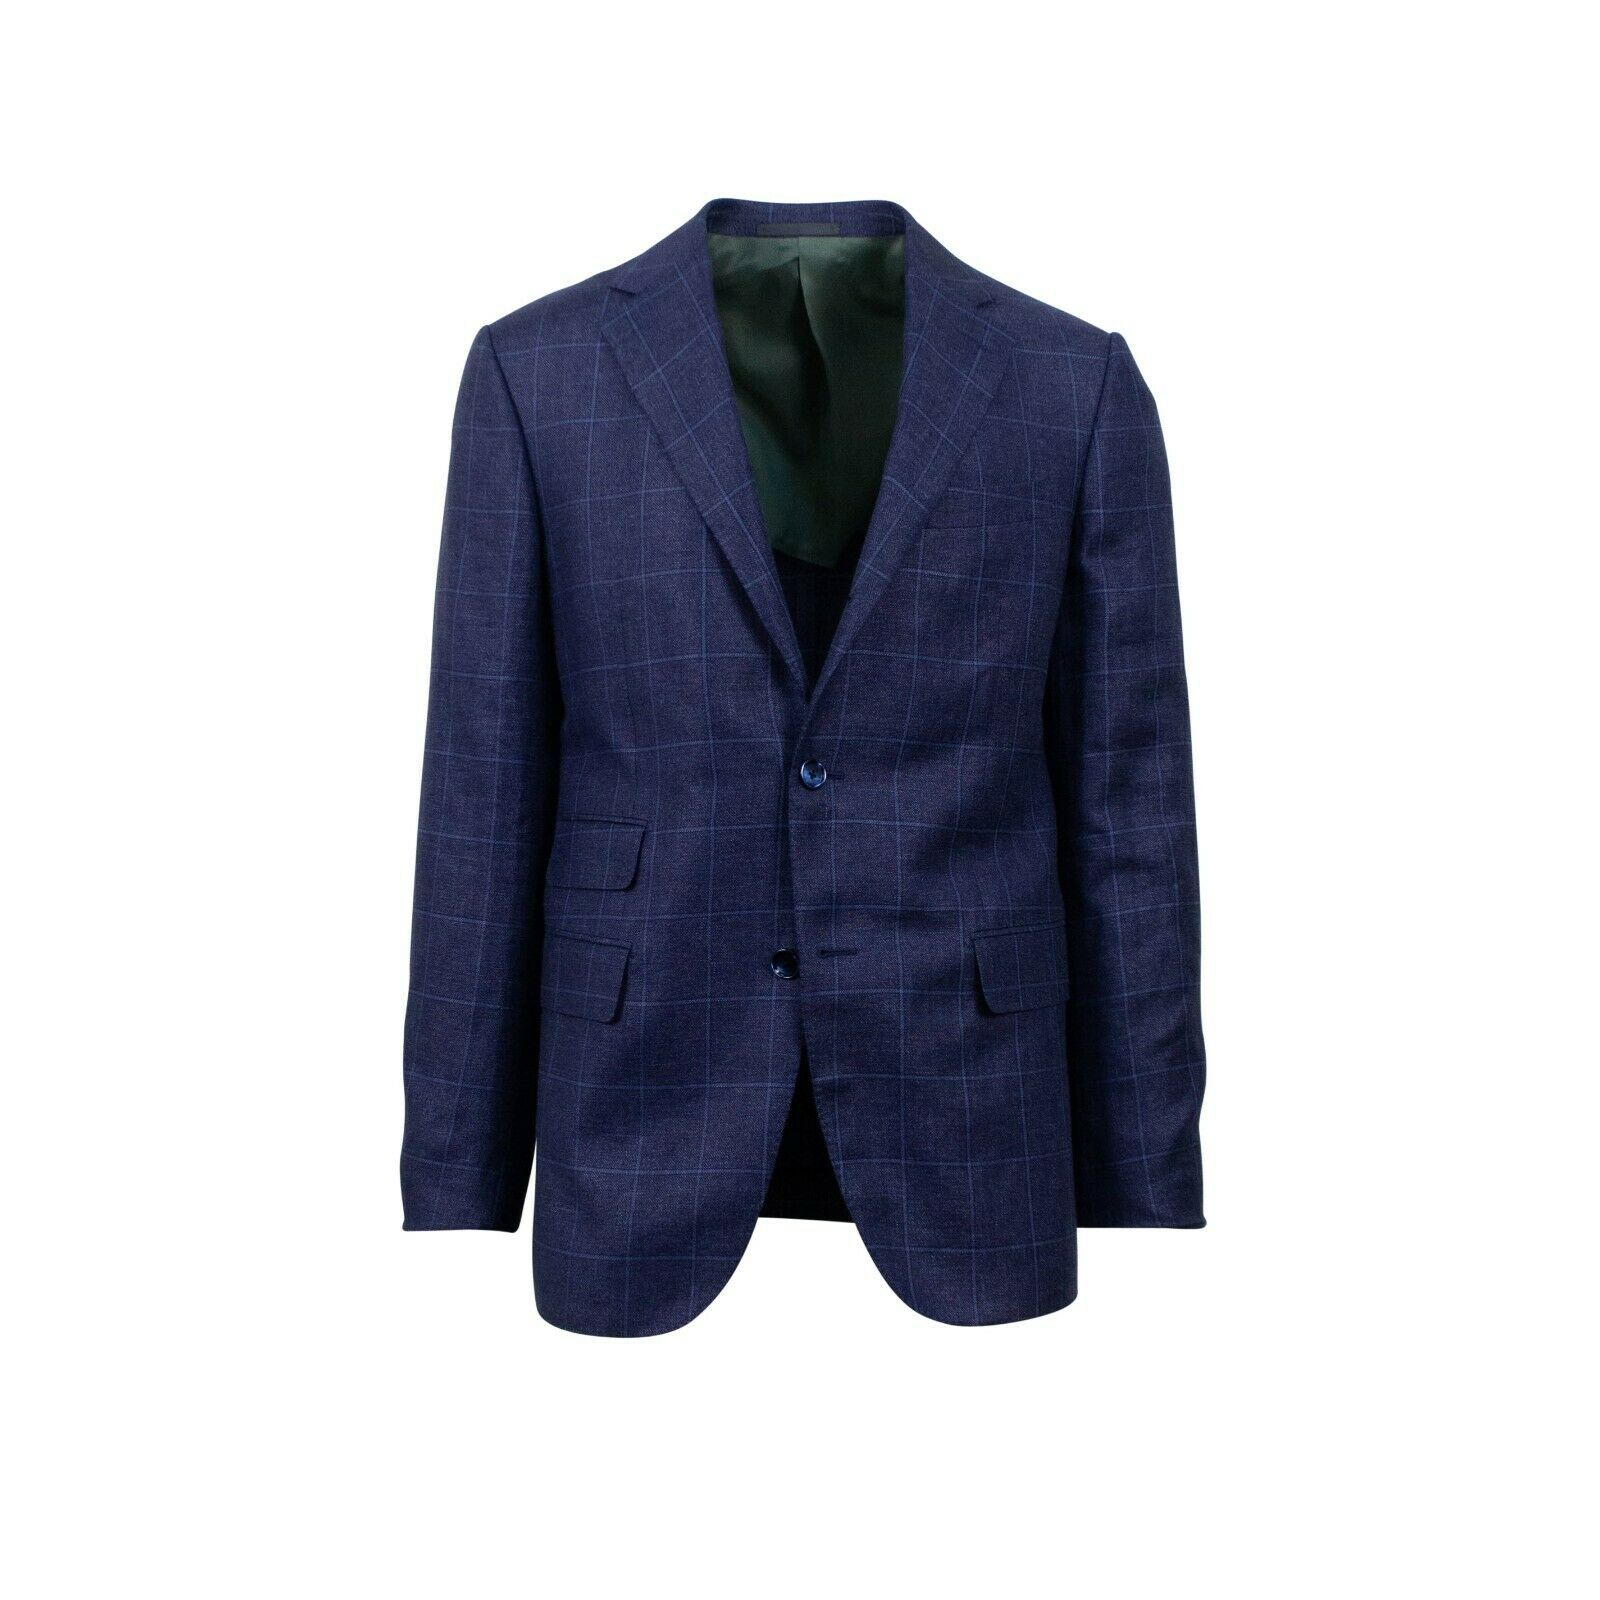 NWT CARUSO Navy bluee Plaid 3 Roll 2 Button Wool Blend Sport Coat 50 40 R Drop 7